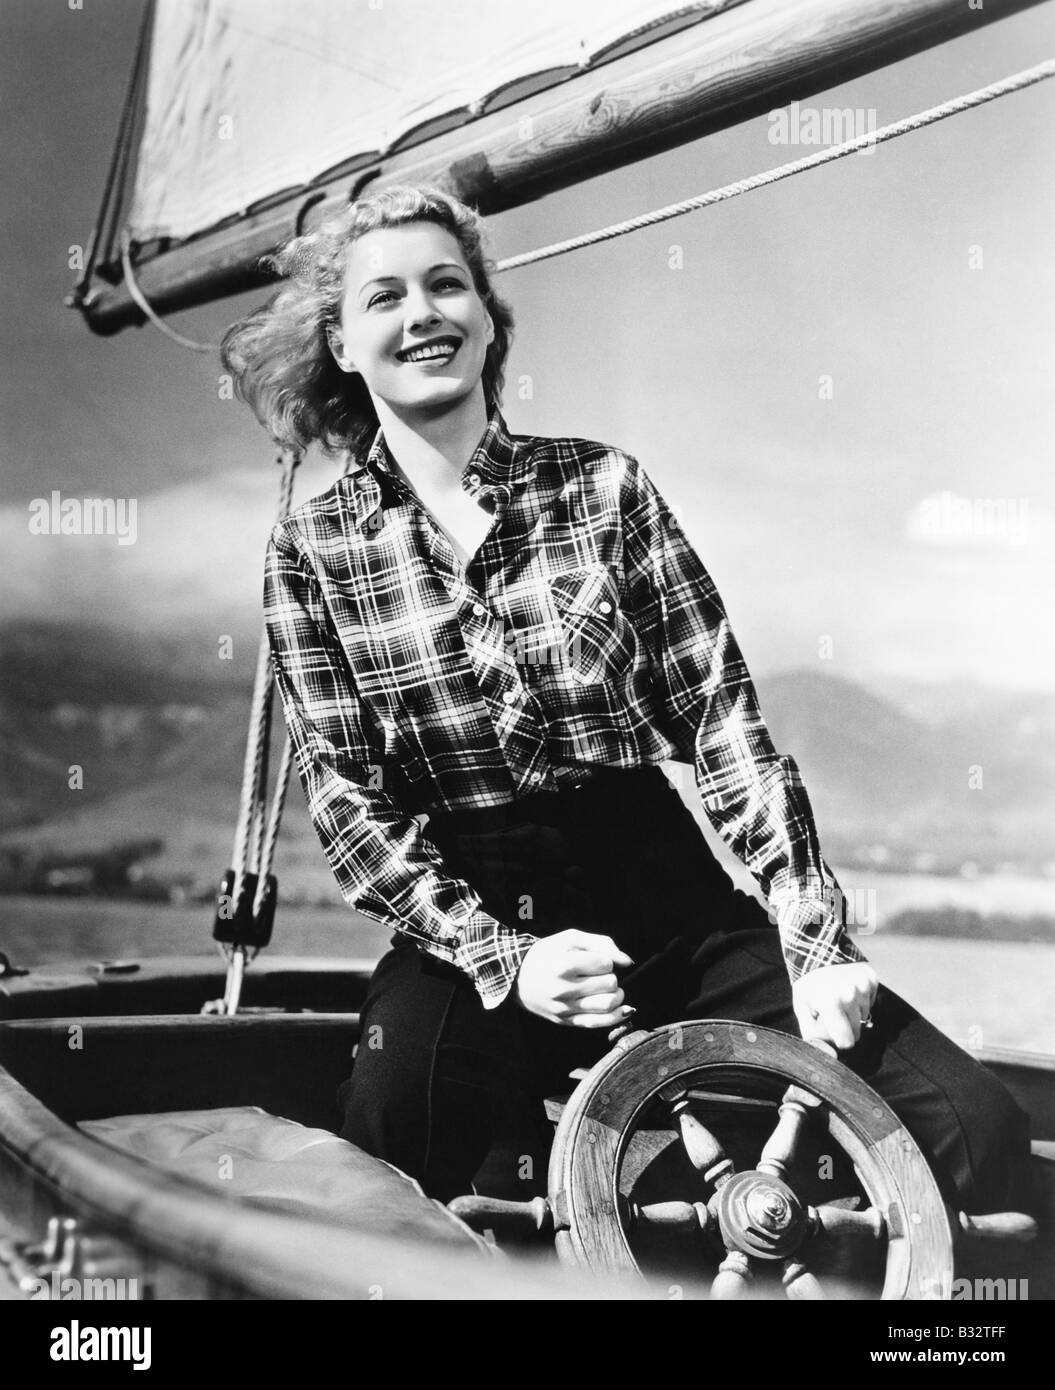 Young woman standing at the helm of a sailboat and holding the wheel - Stock Image